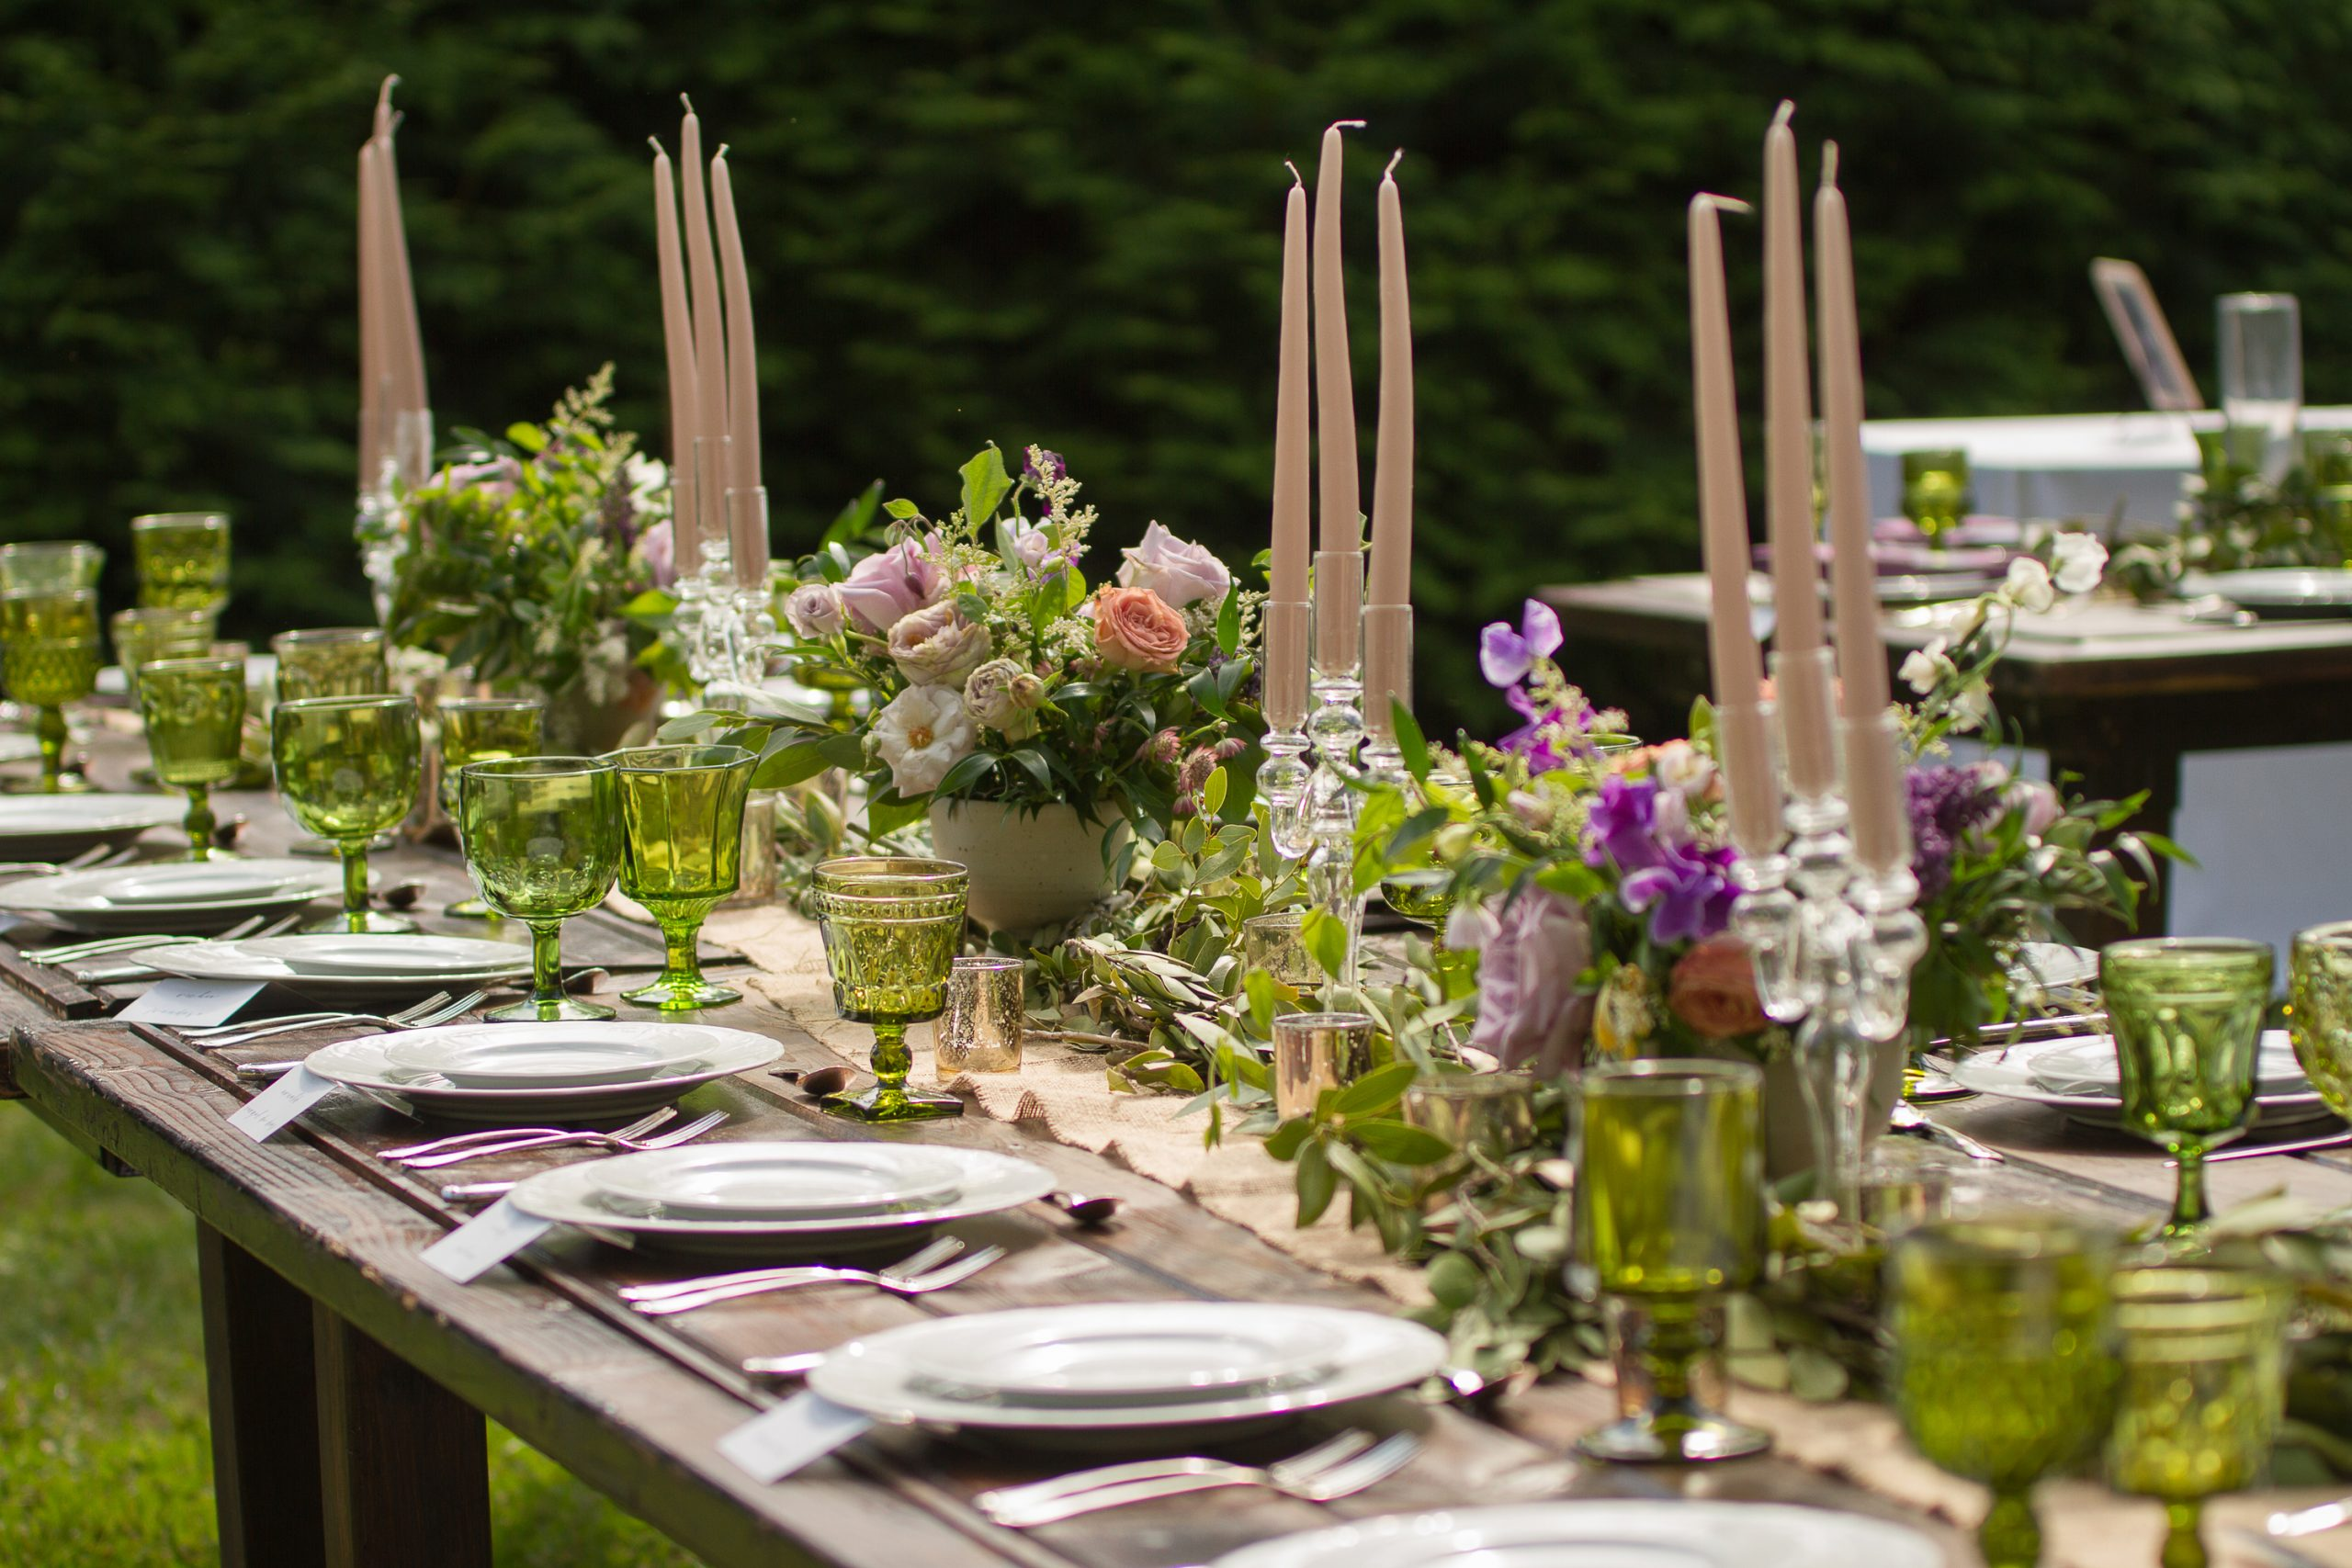 Candlesticks are traditional but easy simple centerpieces. They add height and beauty.